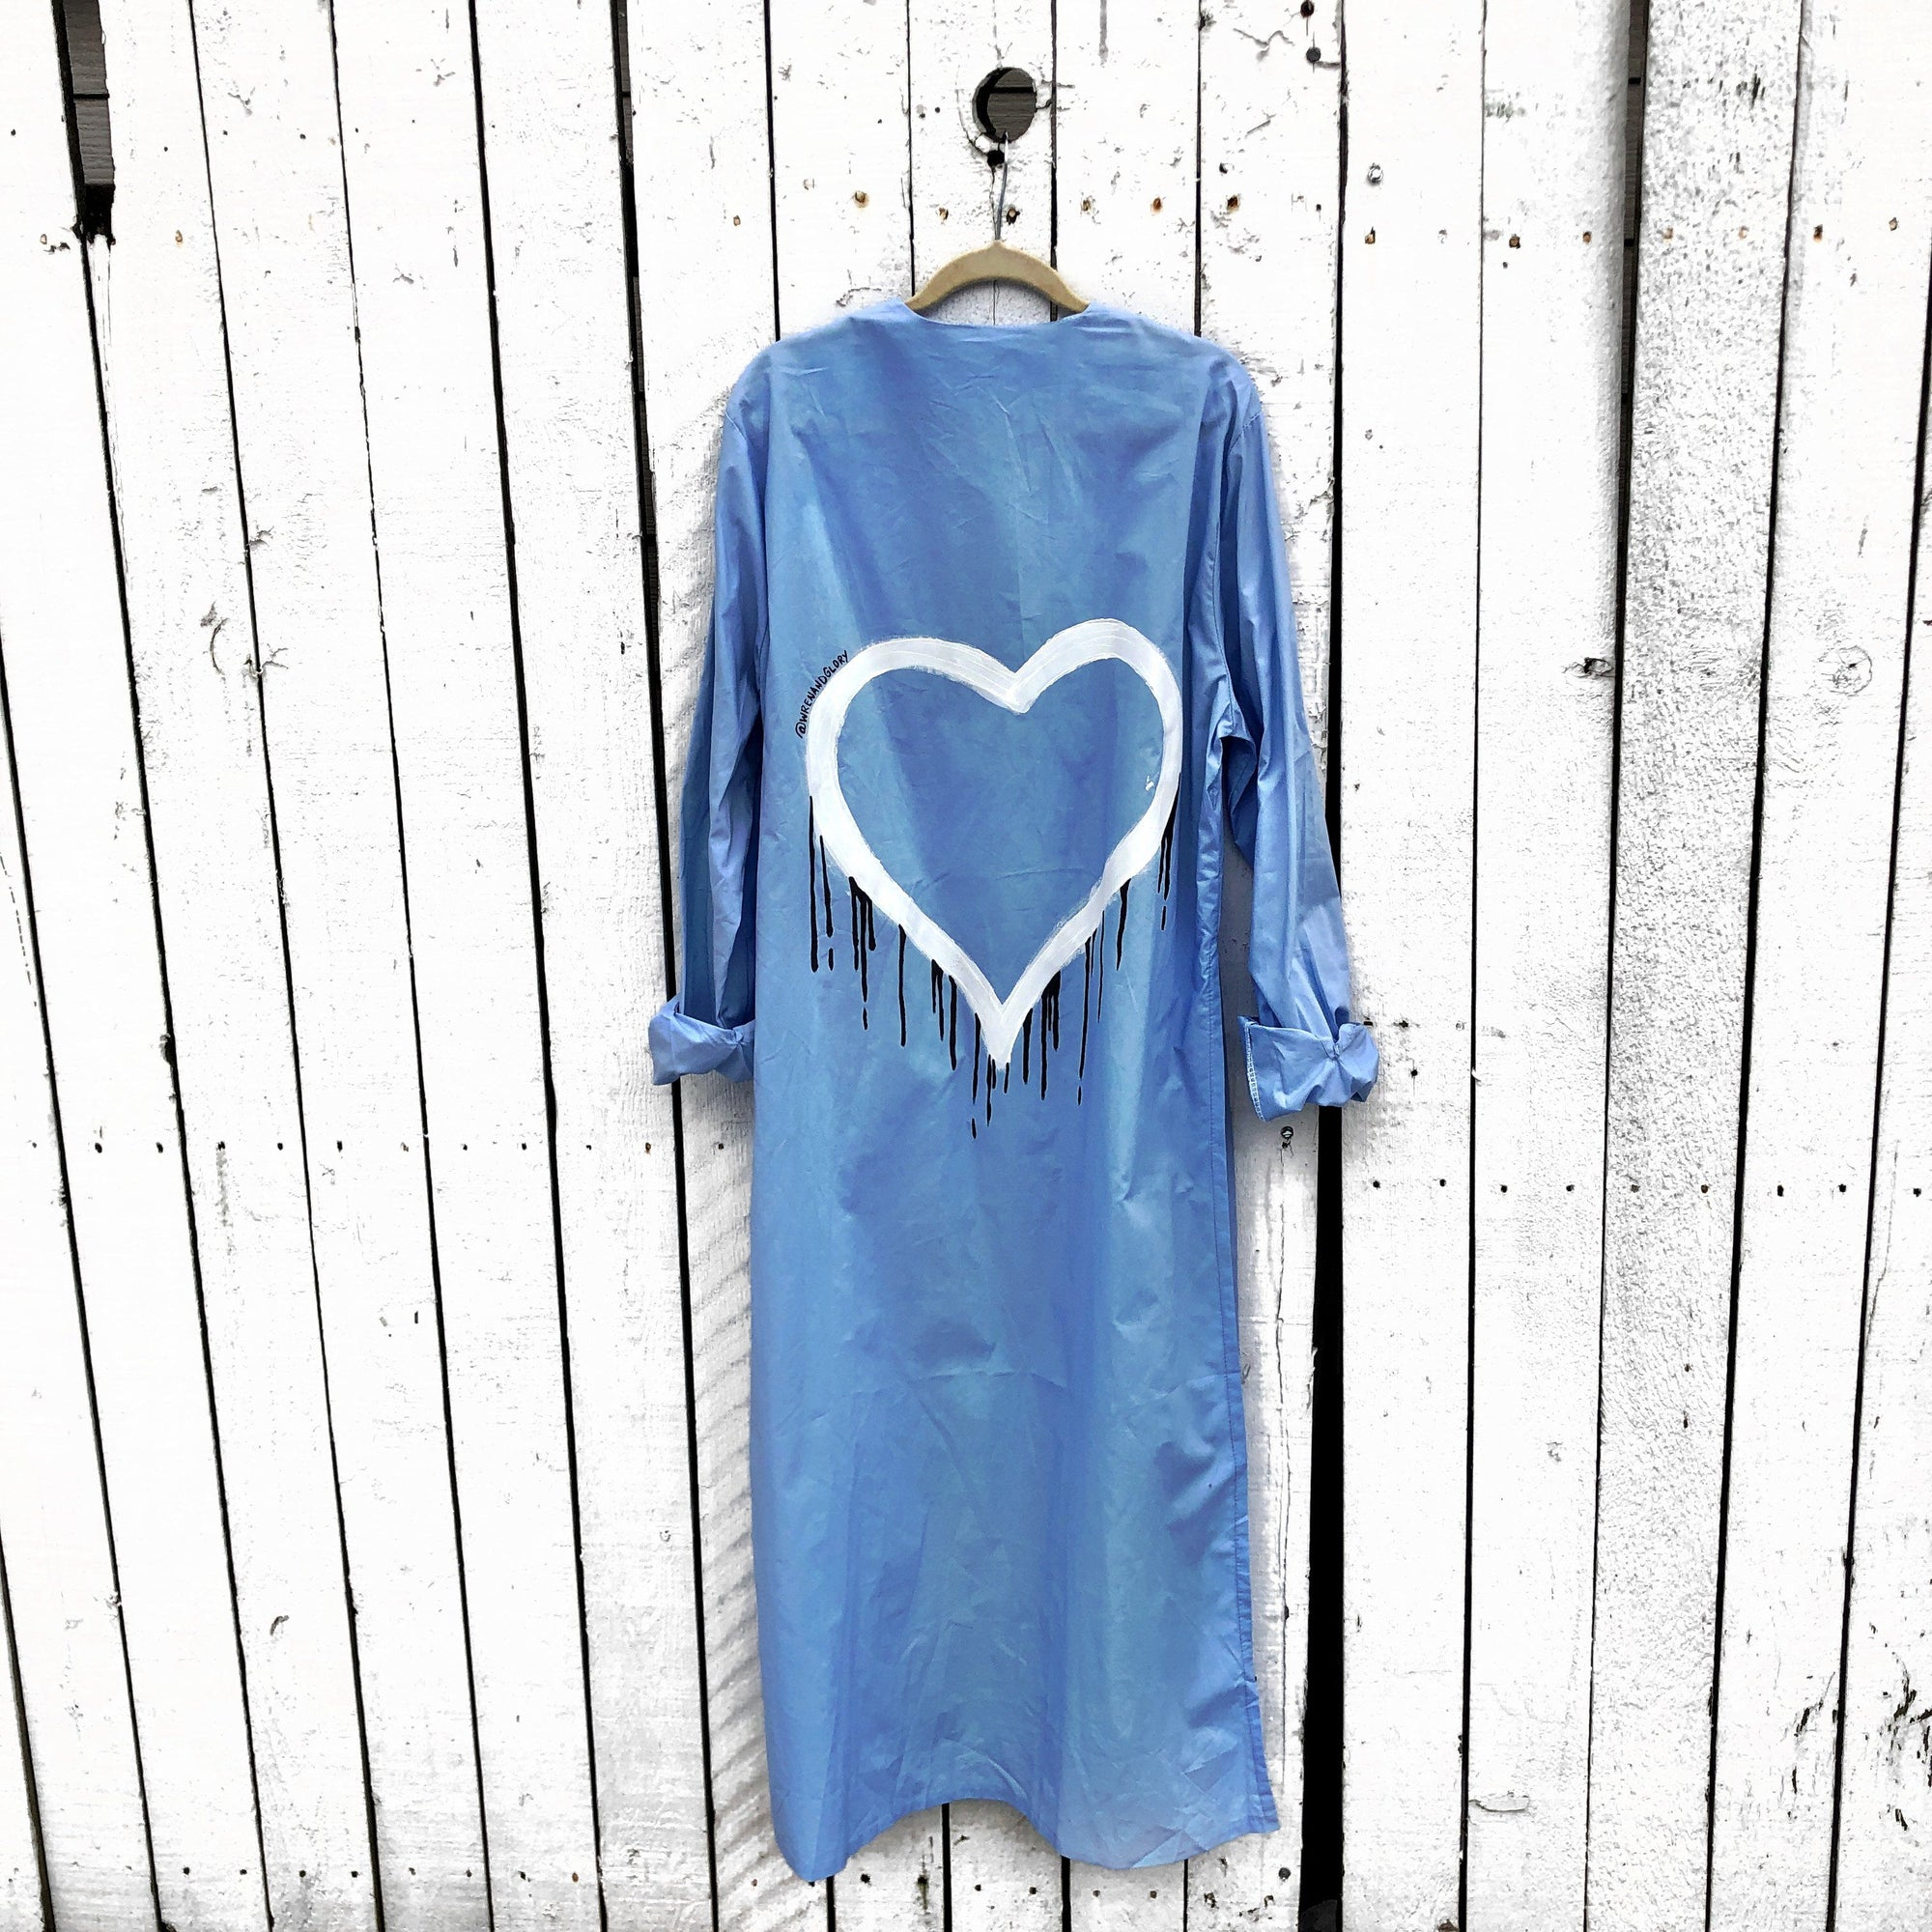 'DRIPPING HEART' PAINTED SHIRT